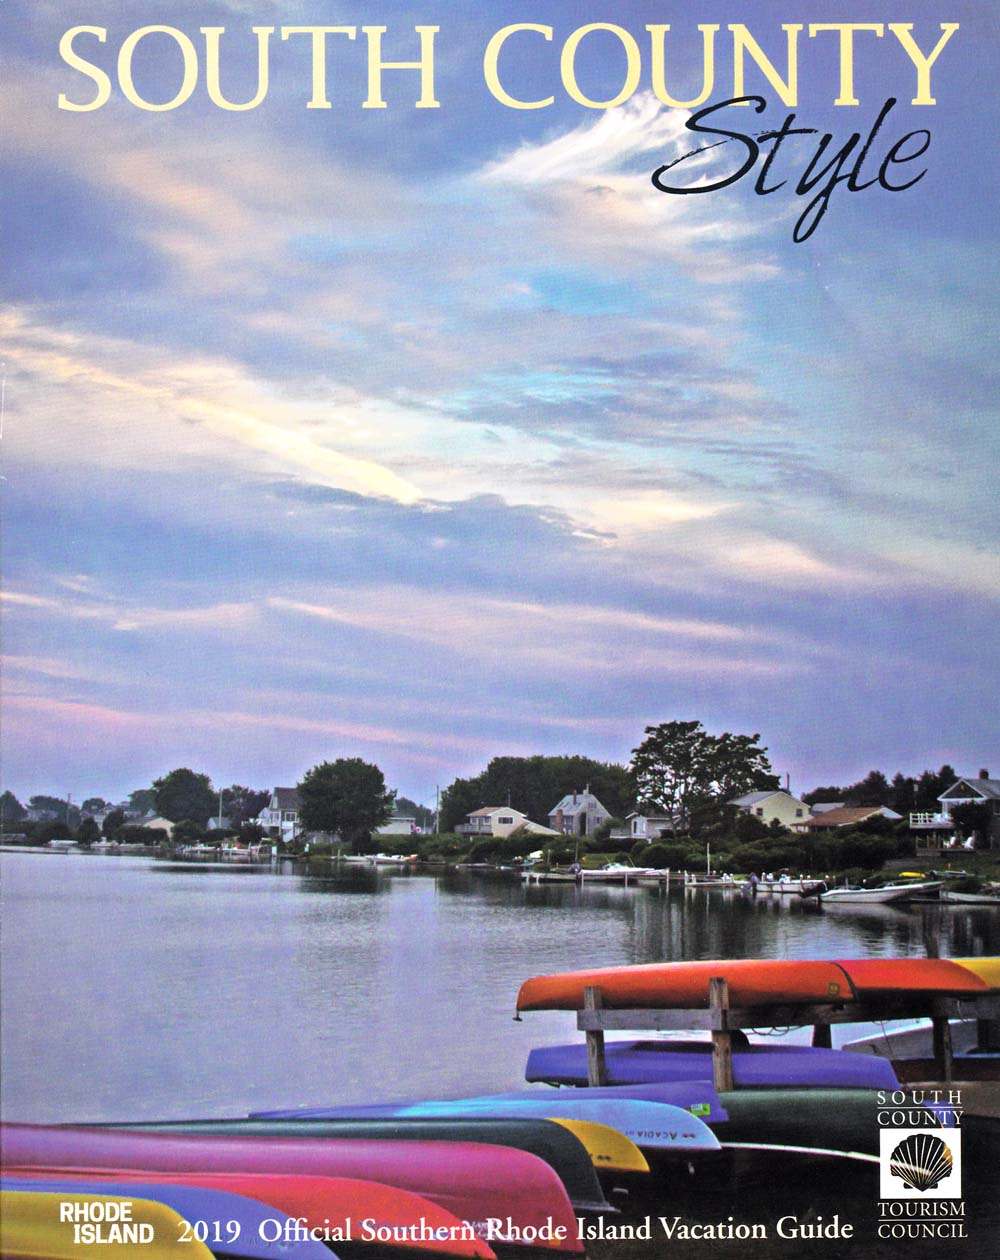 South County Style Front Brochure Cover